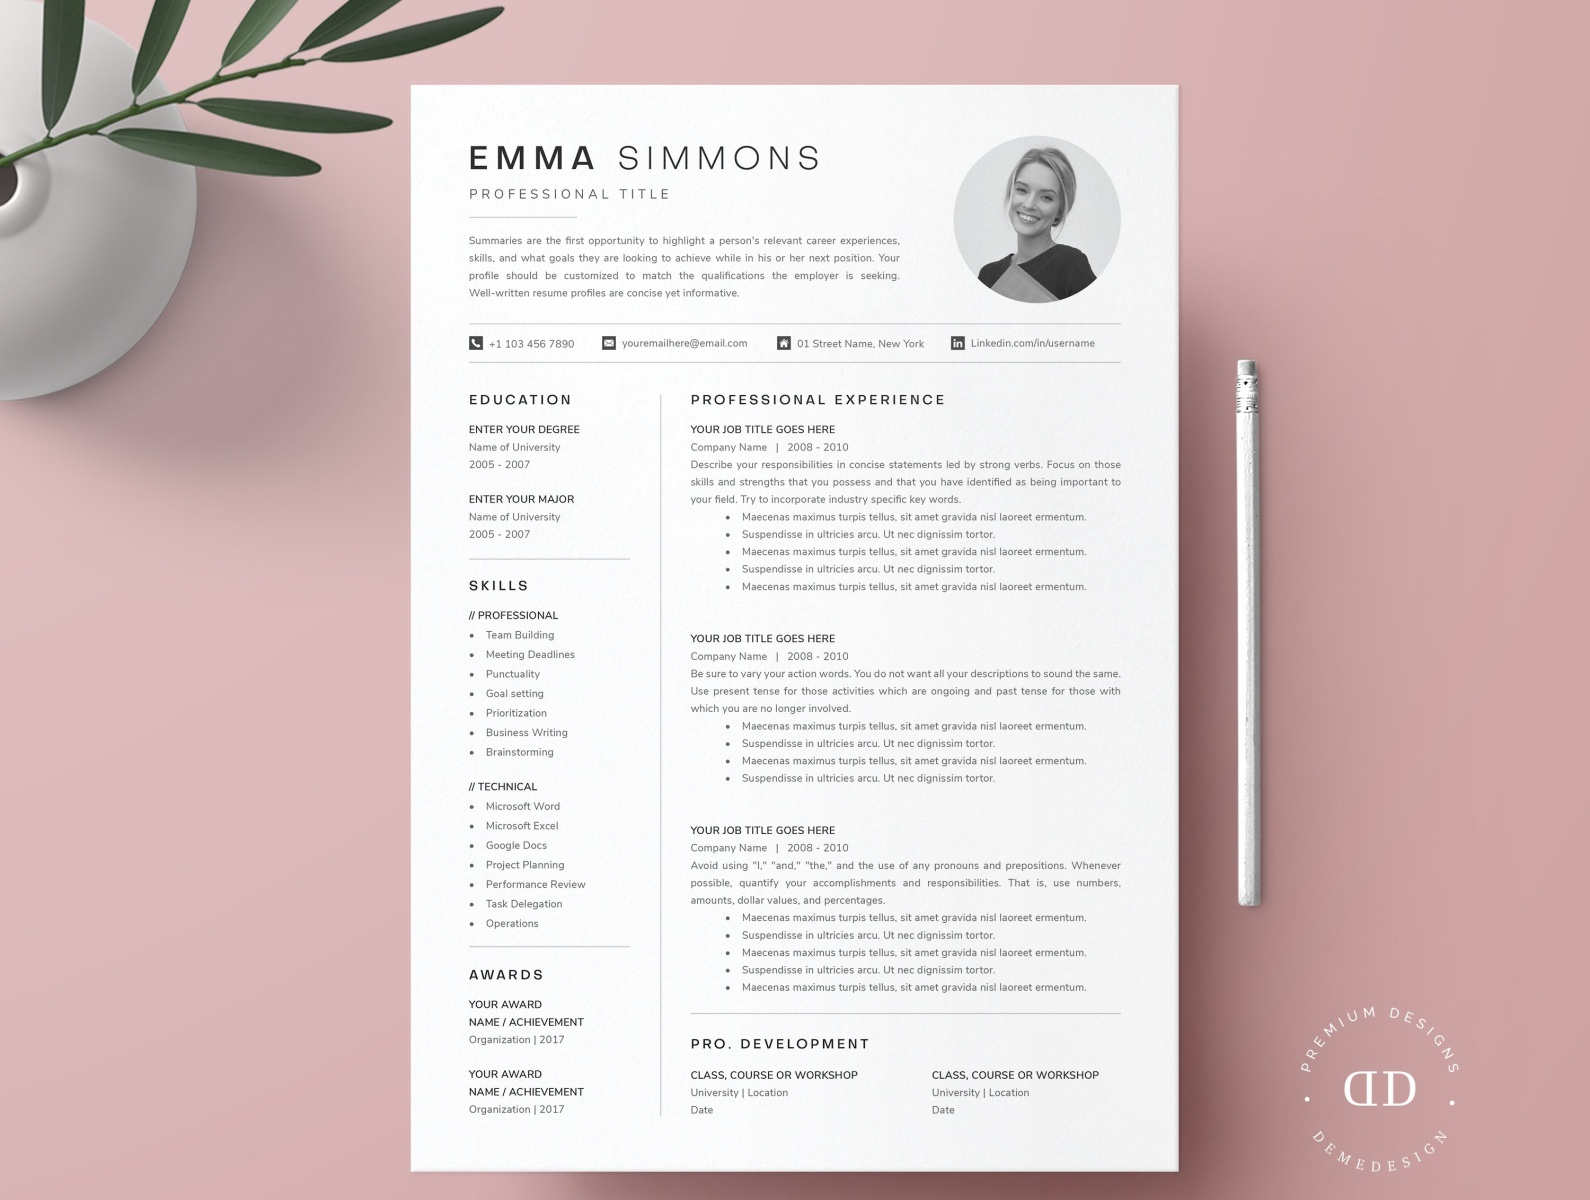 compact one resume template kit by templates on dribbble onepageresumetemplate2 updating Resume One Page Resume Template